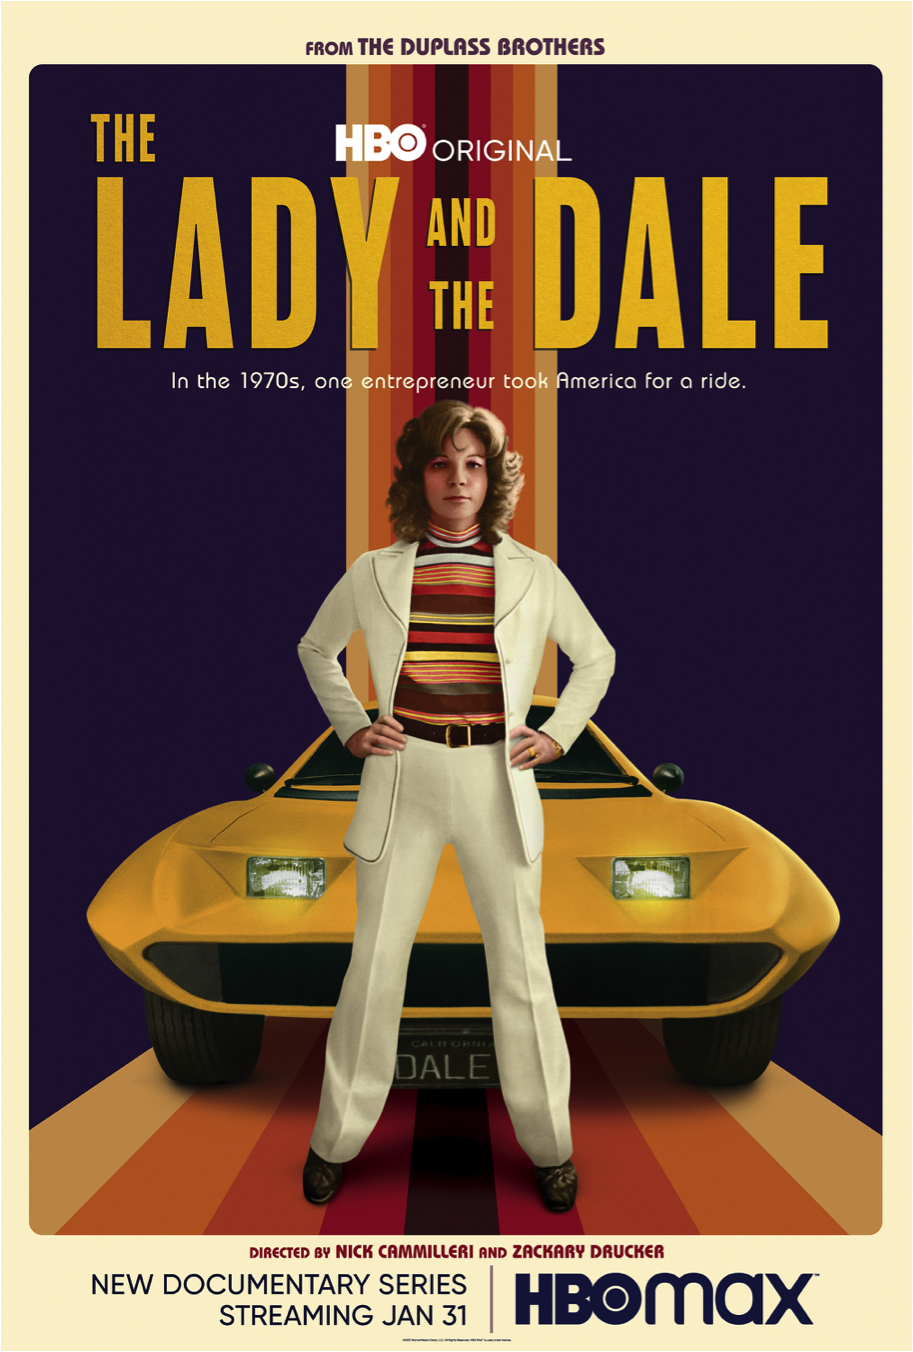 Poster for HBO series The Lady and the Dale